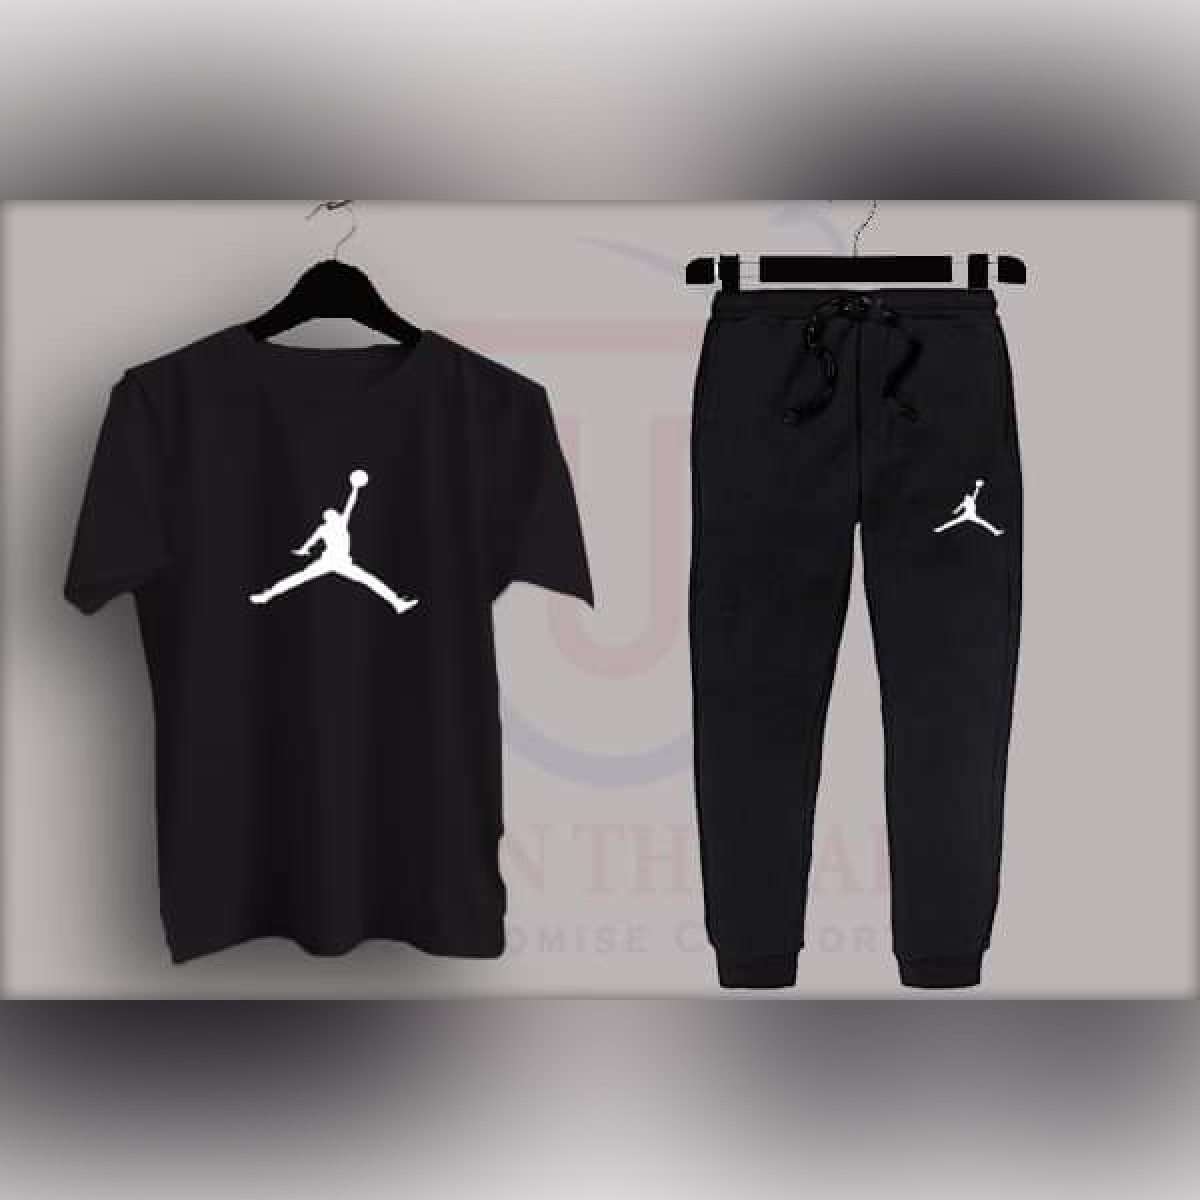 Classic Branded Men's and Women's Track Suit  Gym Wear